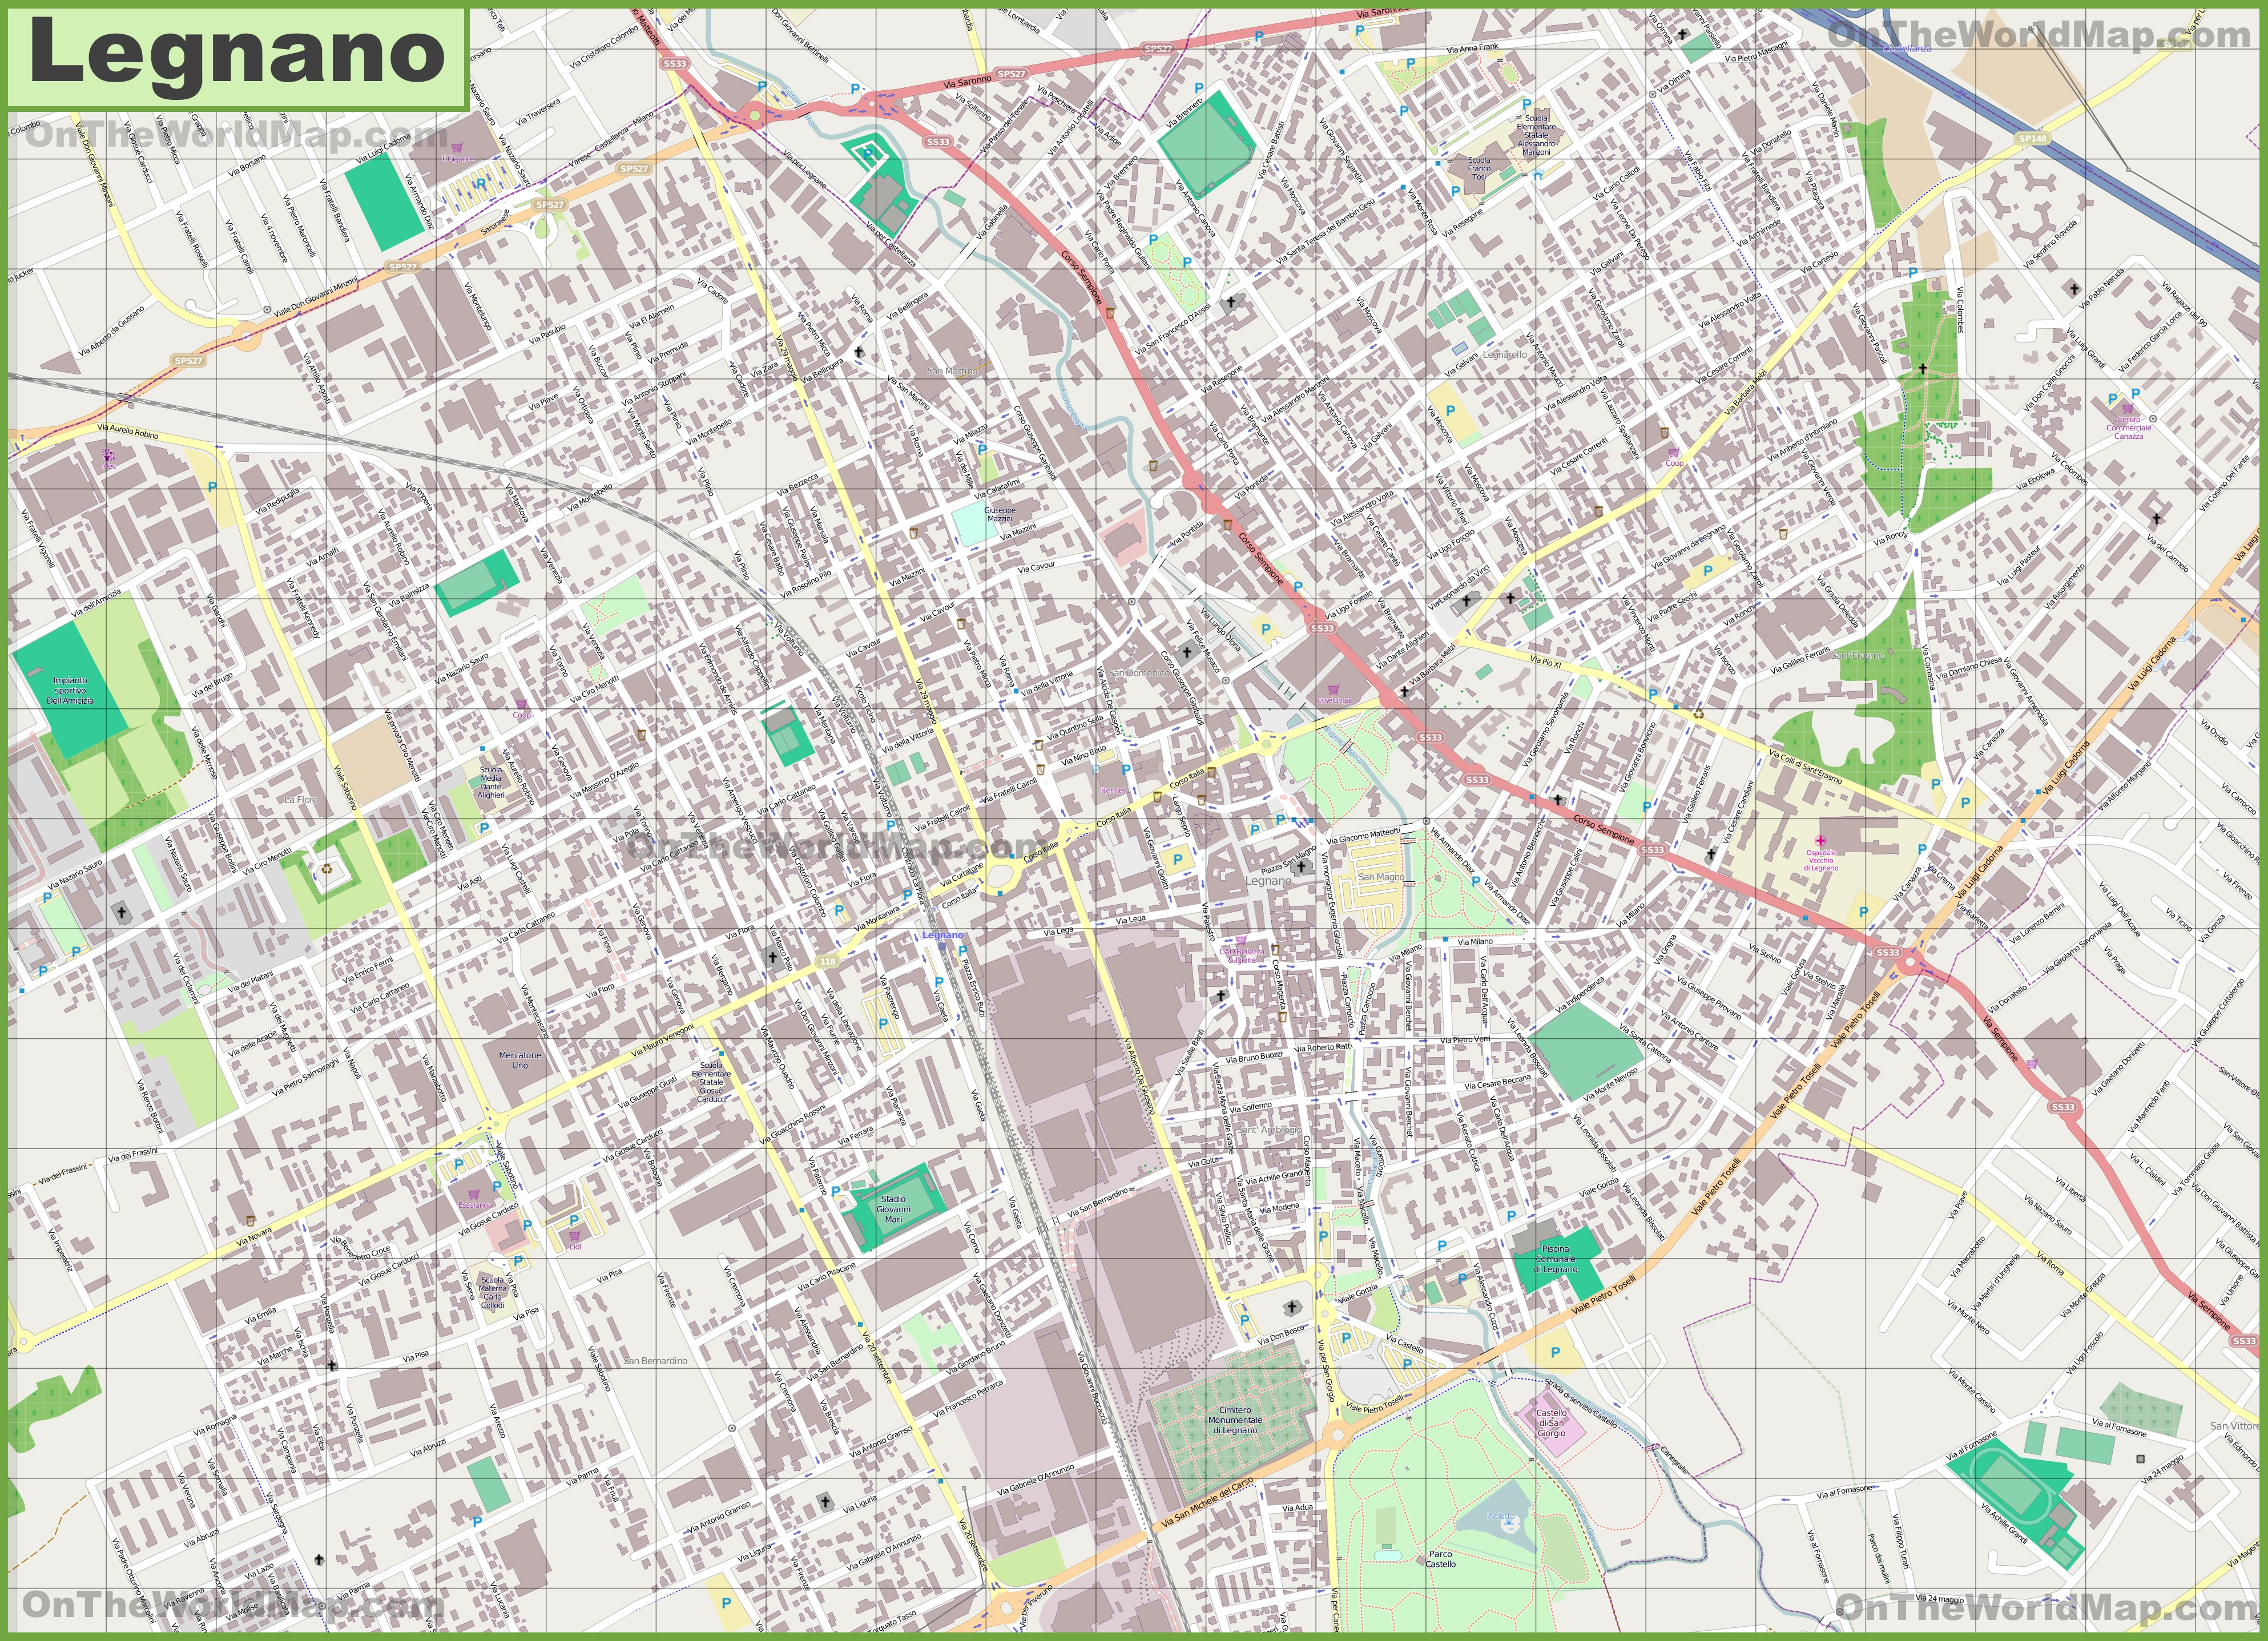 Large detailed map of Legnano